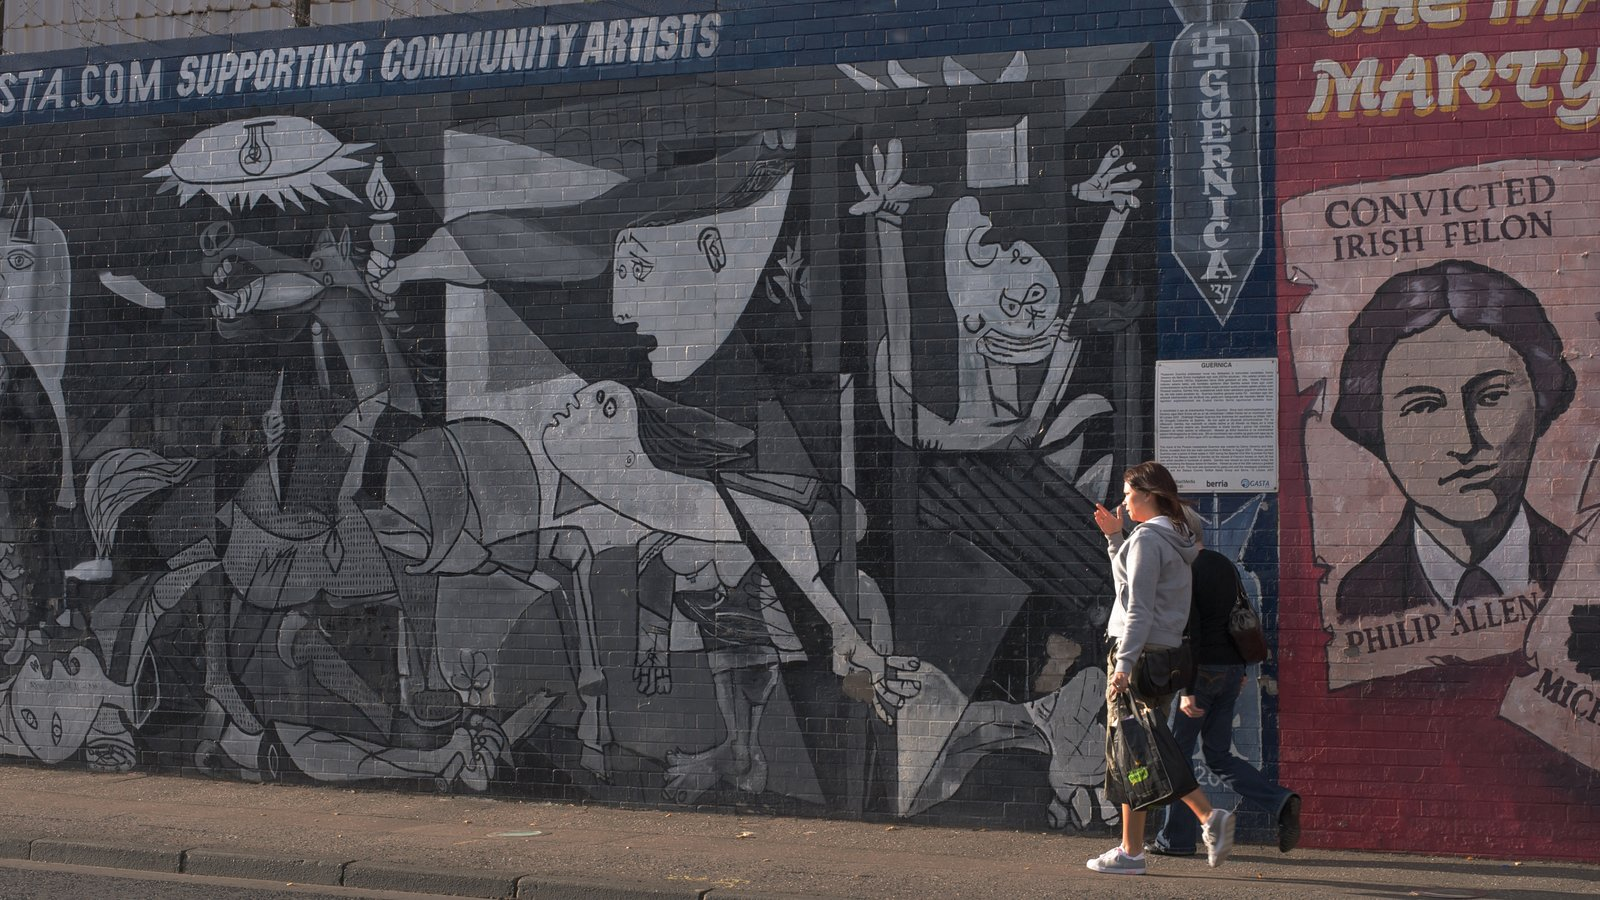 Belfast which includes outdoor art, a city and signage